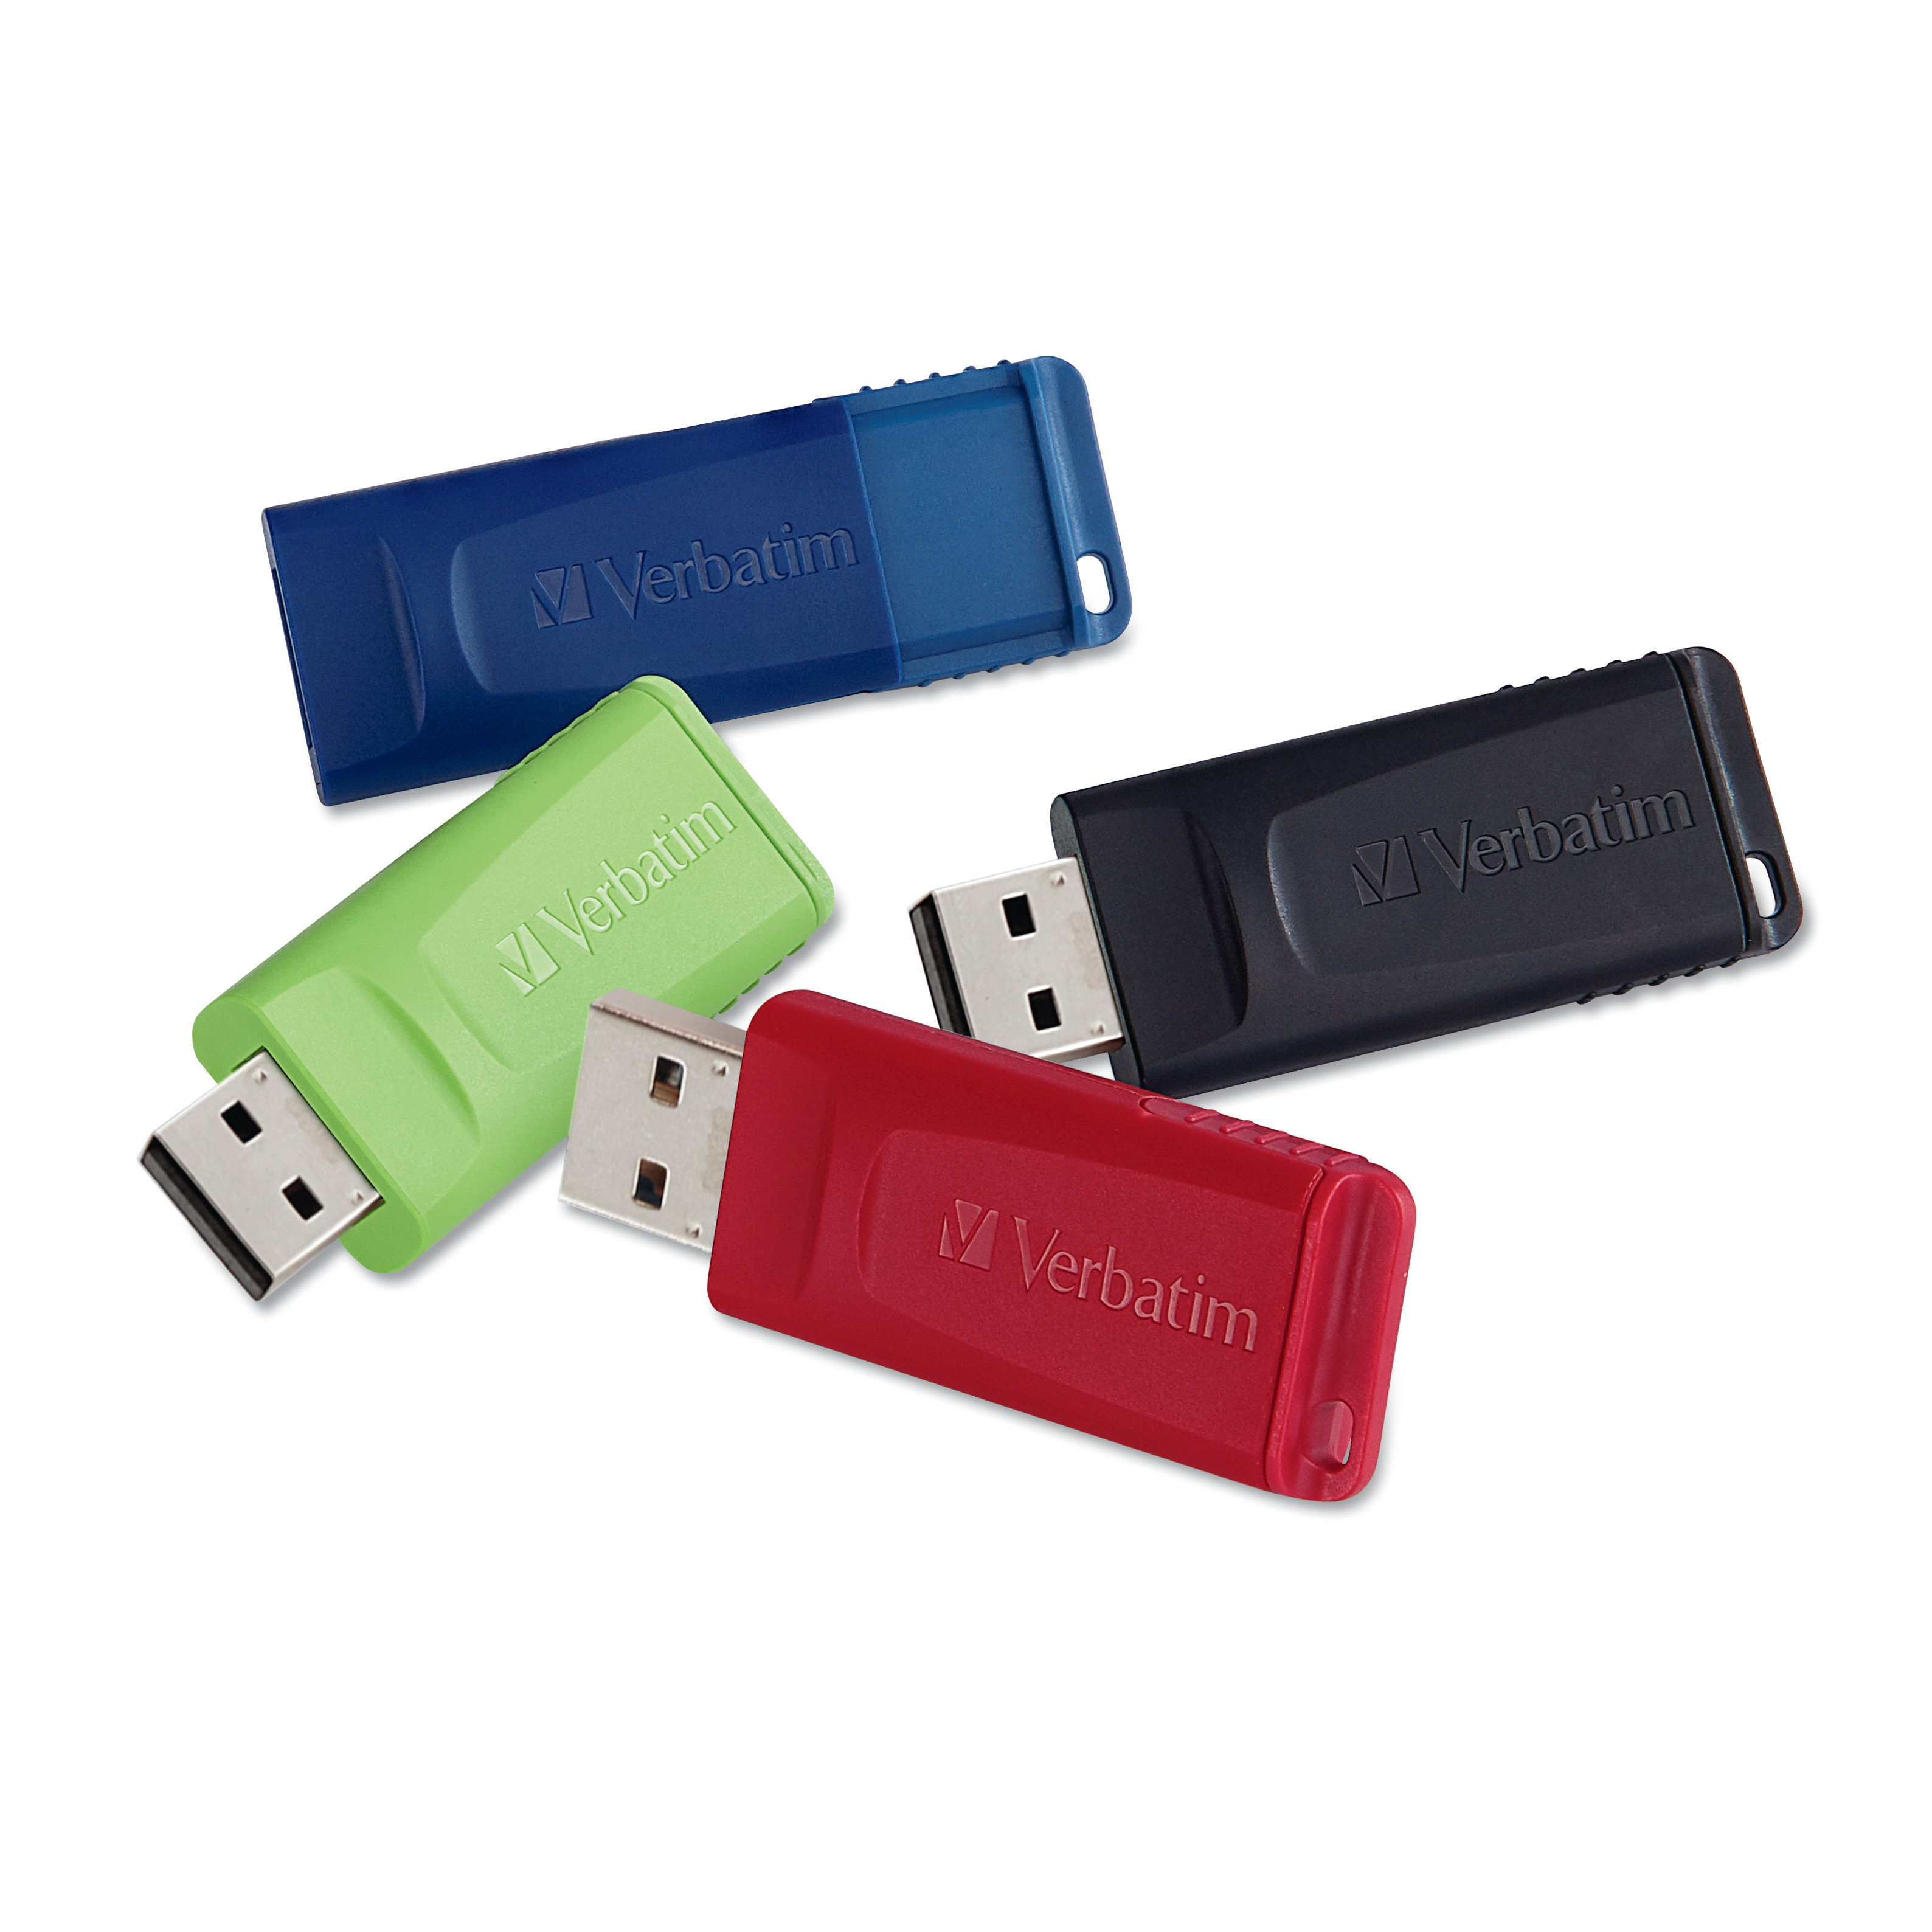 Verbatim Store 'n' Go USB 2.0 Flash Drive, 16GB, 4/Pack -VER99123